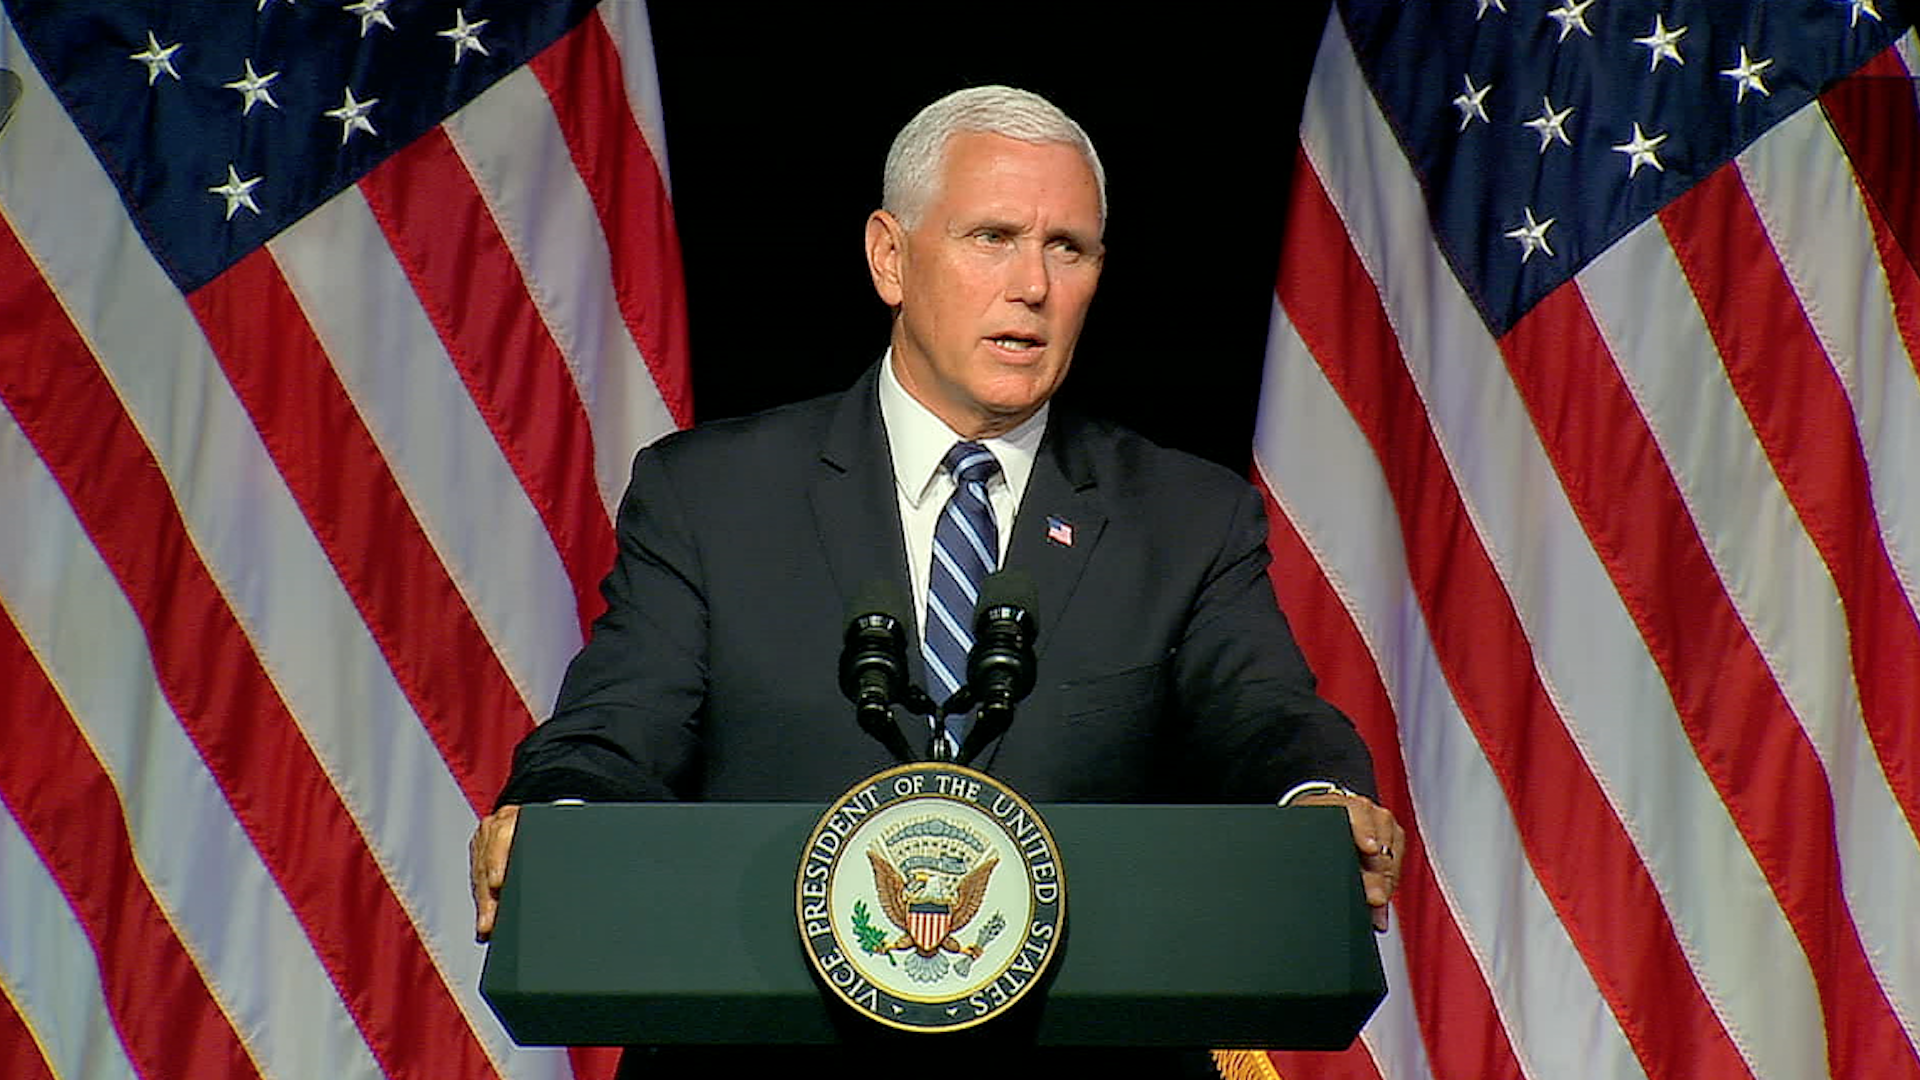 Pence details plan for creation of Space Force in what would be the sixth branch of the military